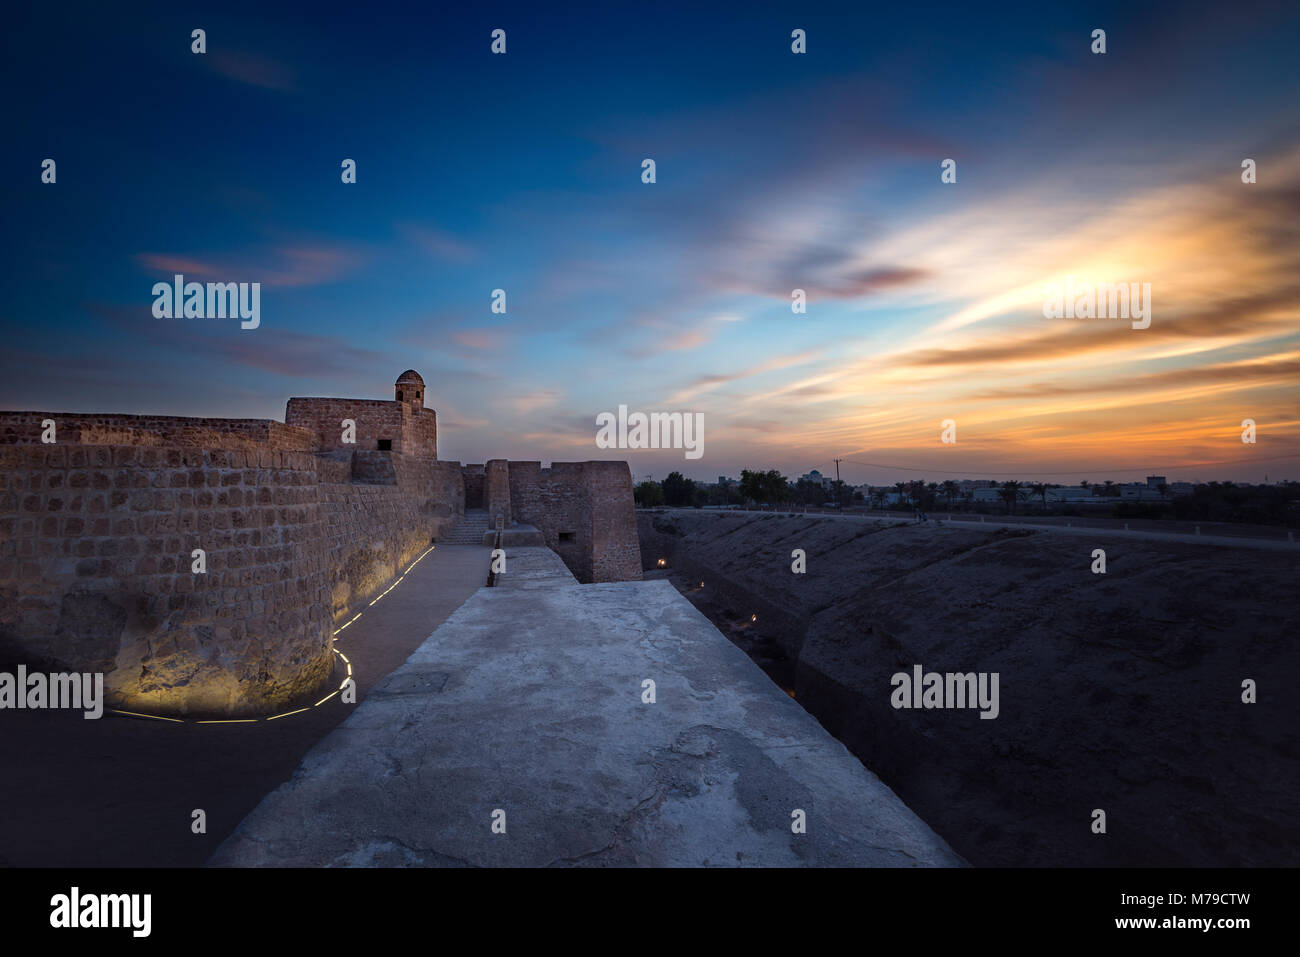 Sunset view from Bahrain Fort (Qalat Al Bahrain) taken on Dec 2017 - Stock Image